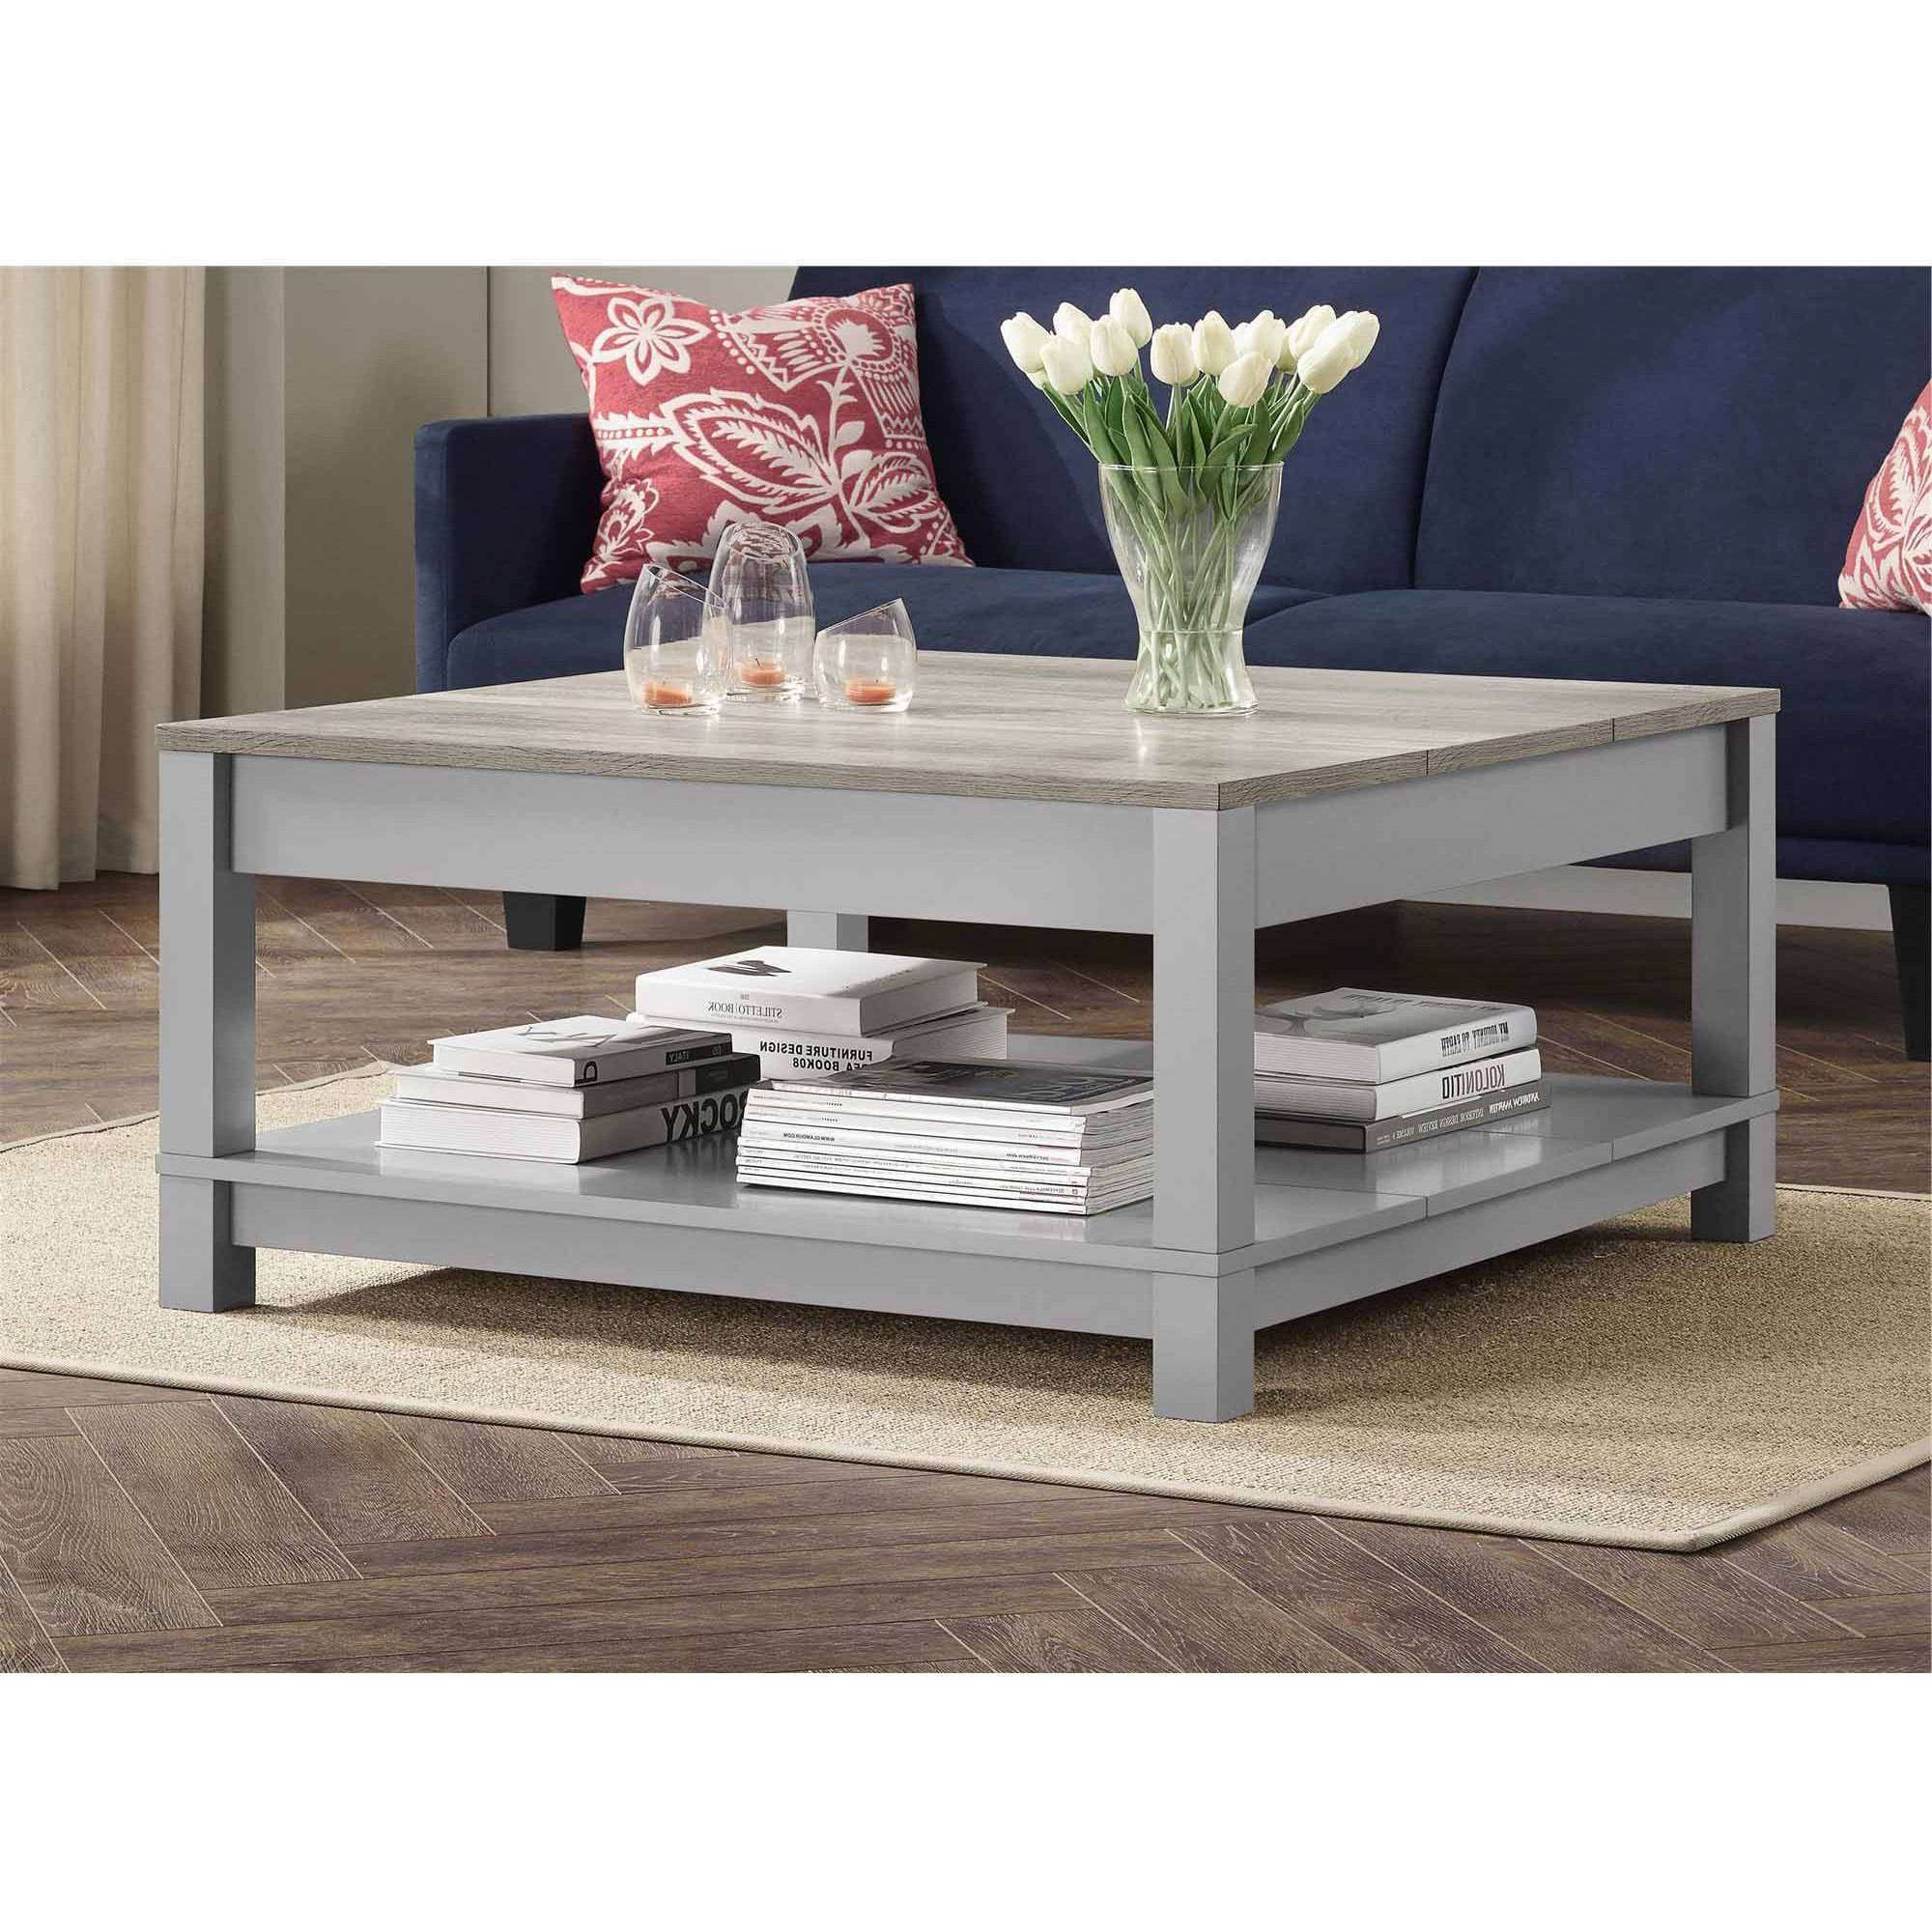 Most Up To Date Grey Wood Coffee Tables Inside Better Homes And Gardens Langley Bay Coffee Table, Multiple Colors (View 9 of 20)